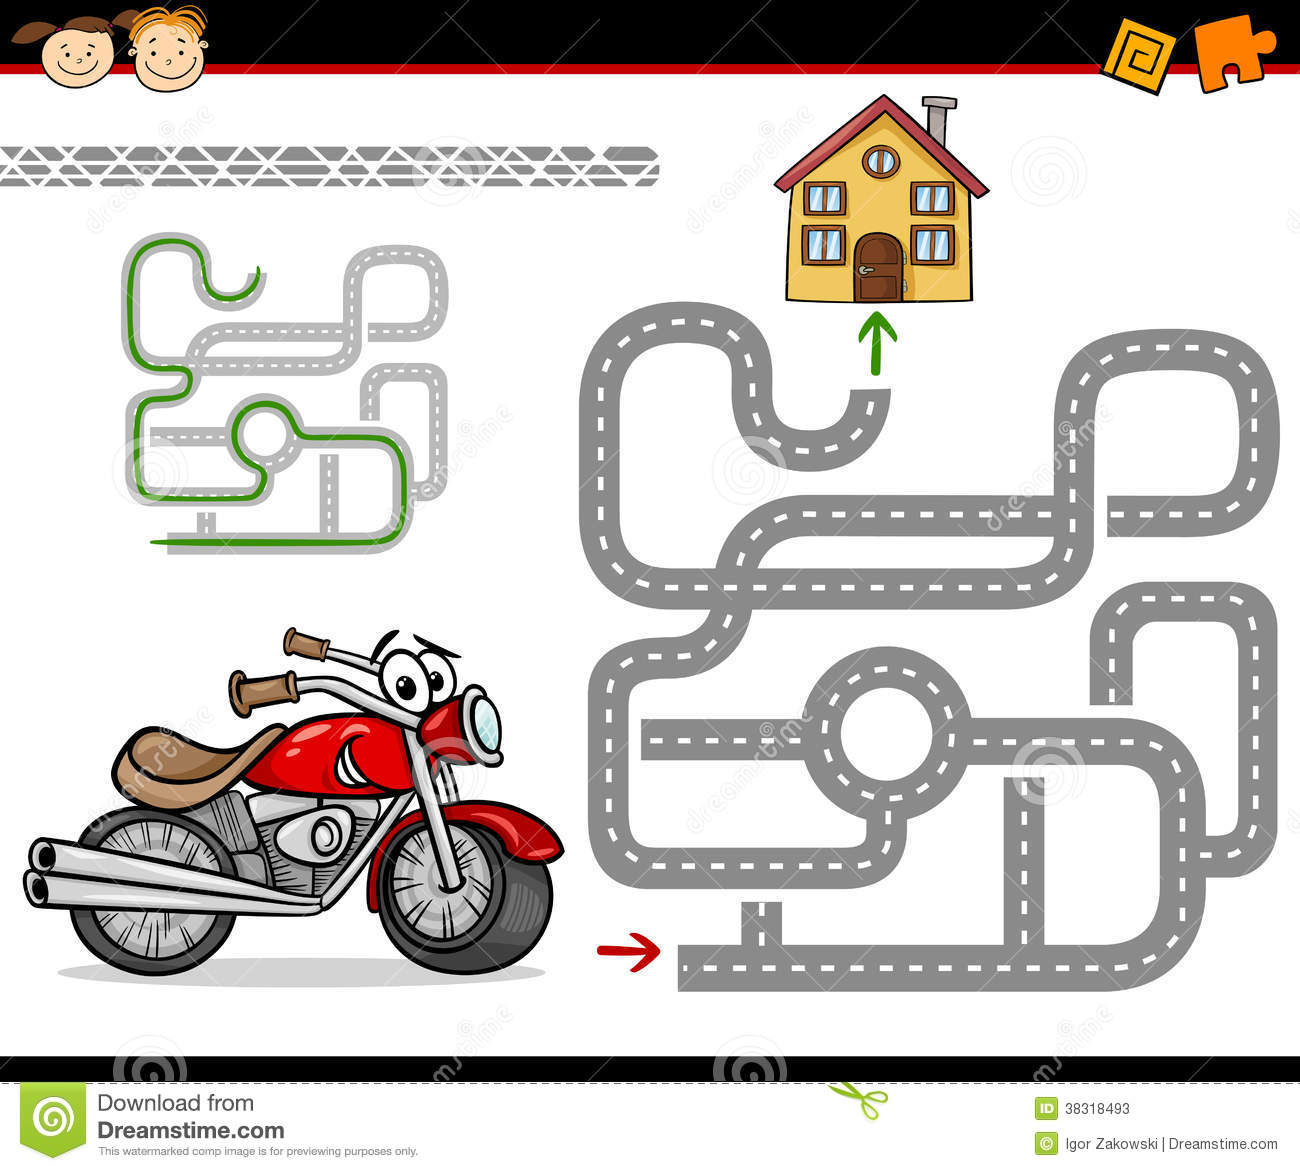 Free House Design Cartoon Maze Or Labyrinth Game Stock Vector Image 38318493